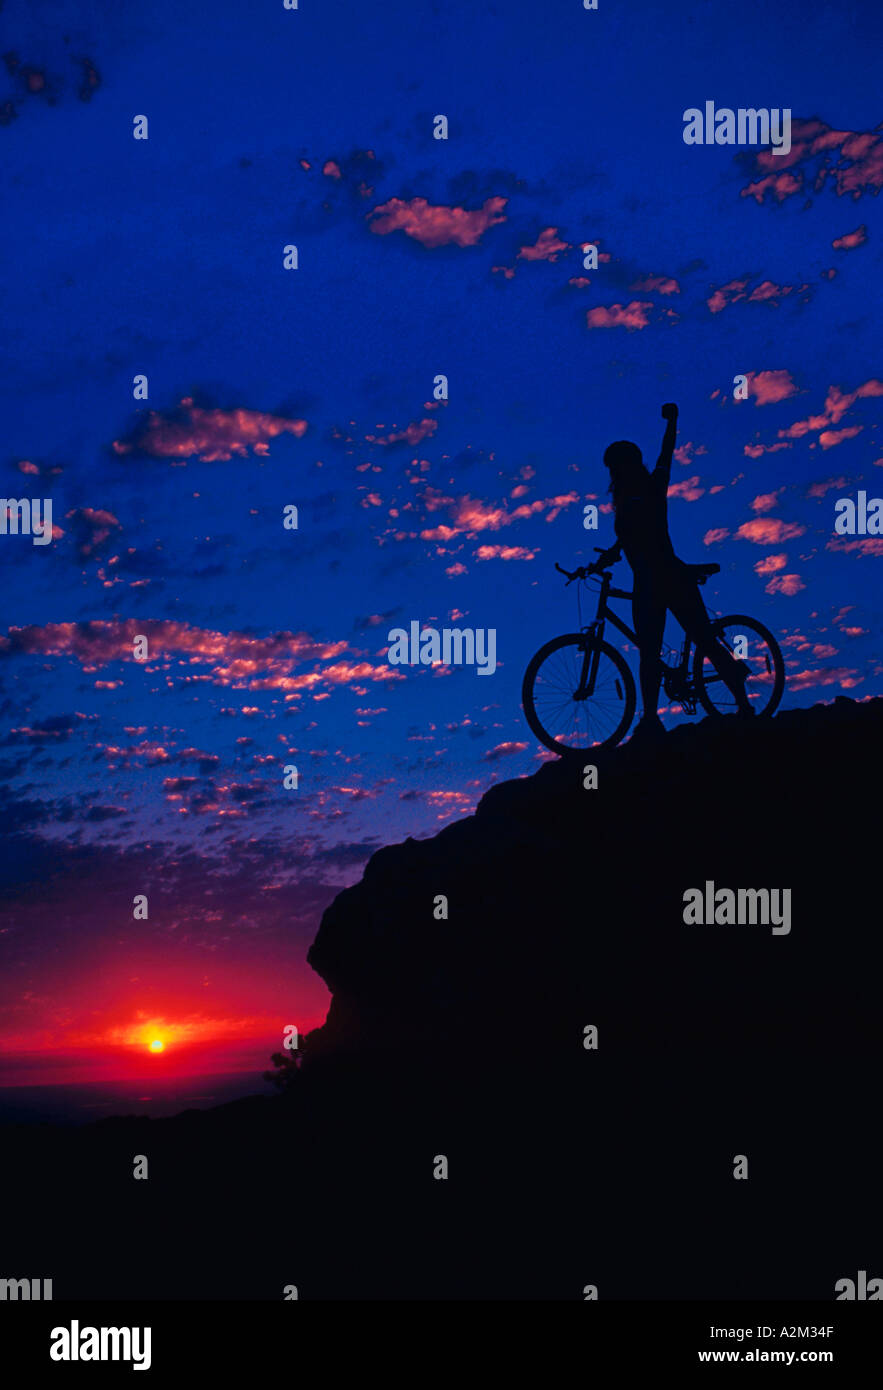 Silhouette of a young woman with a bicycle standing with her arm outstretched on top of a mountain peak - Stock Image